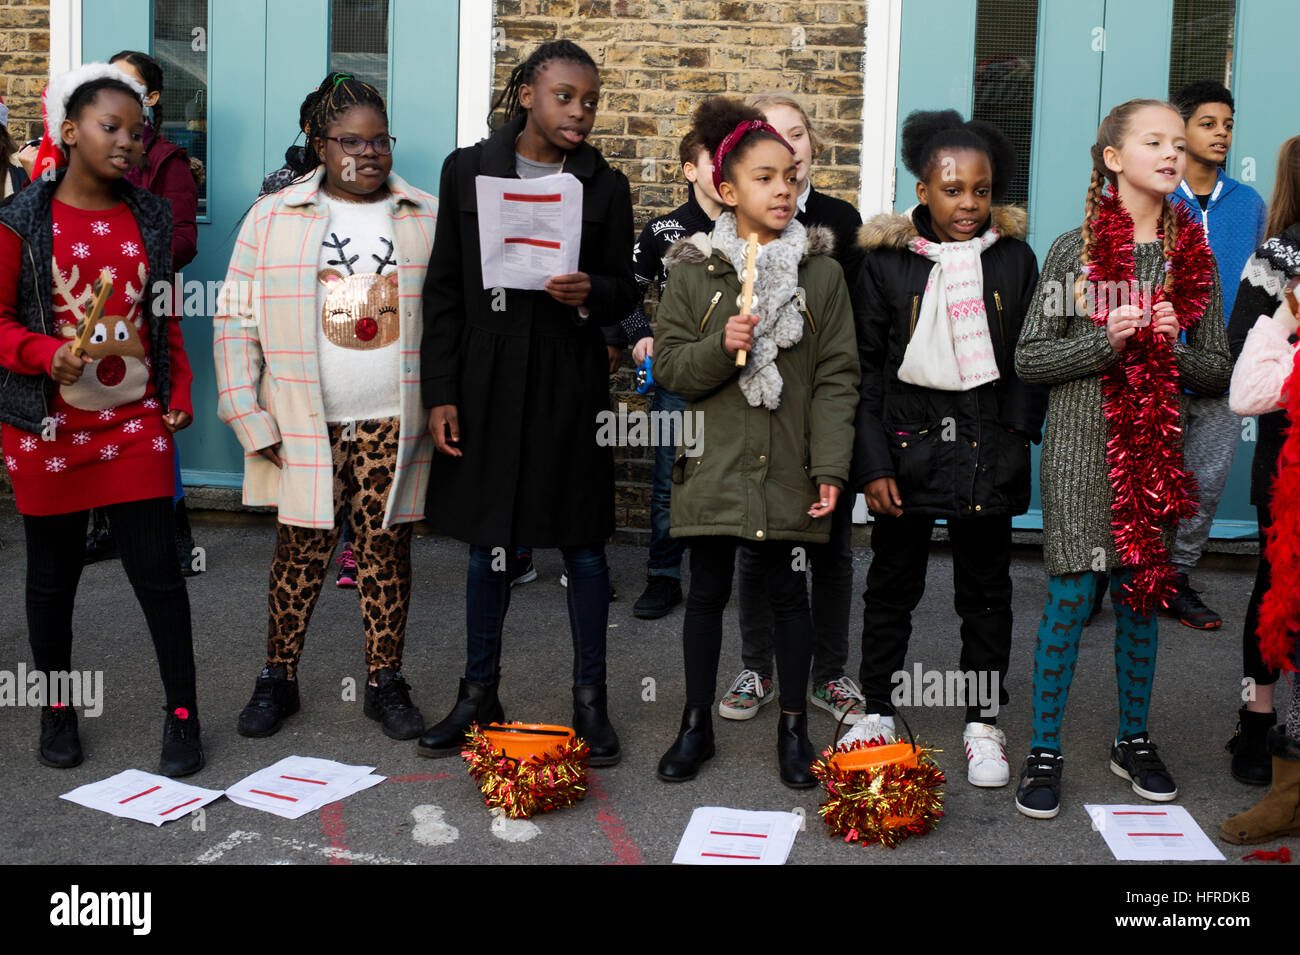 Hackney. Young carol singers raising money for charity. - Stock Image